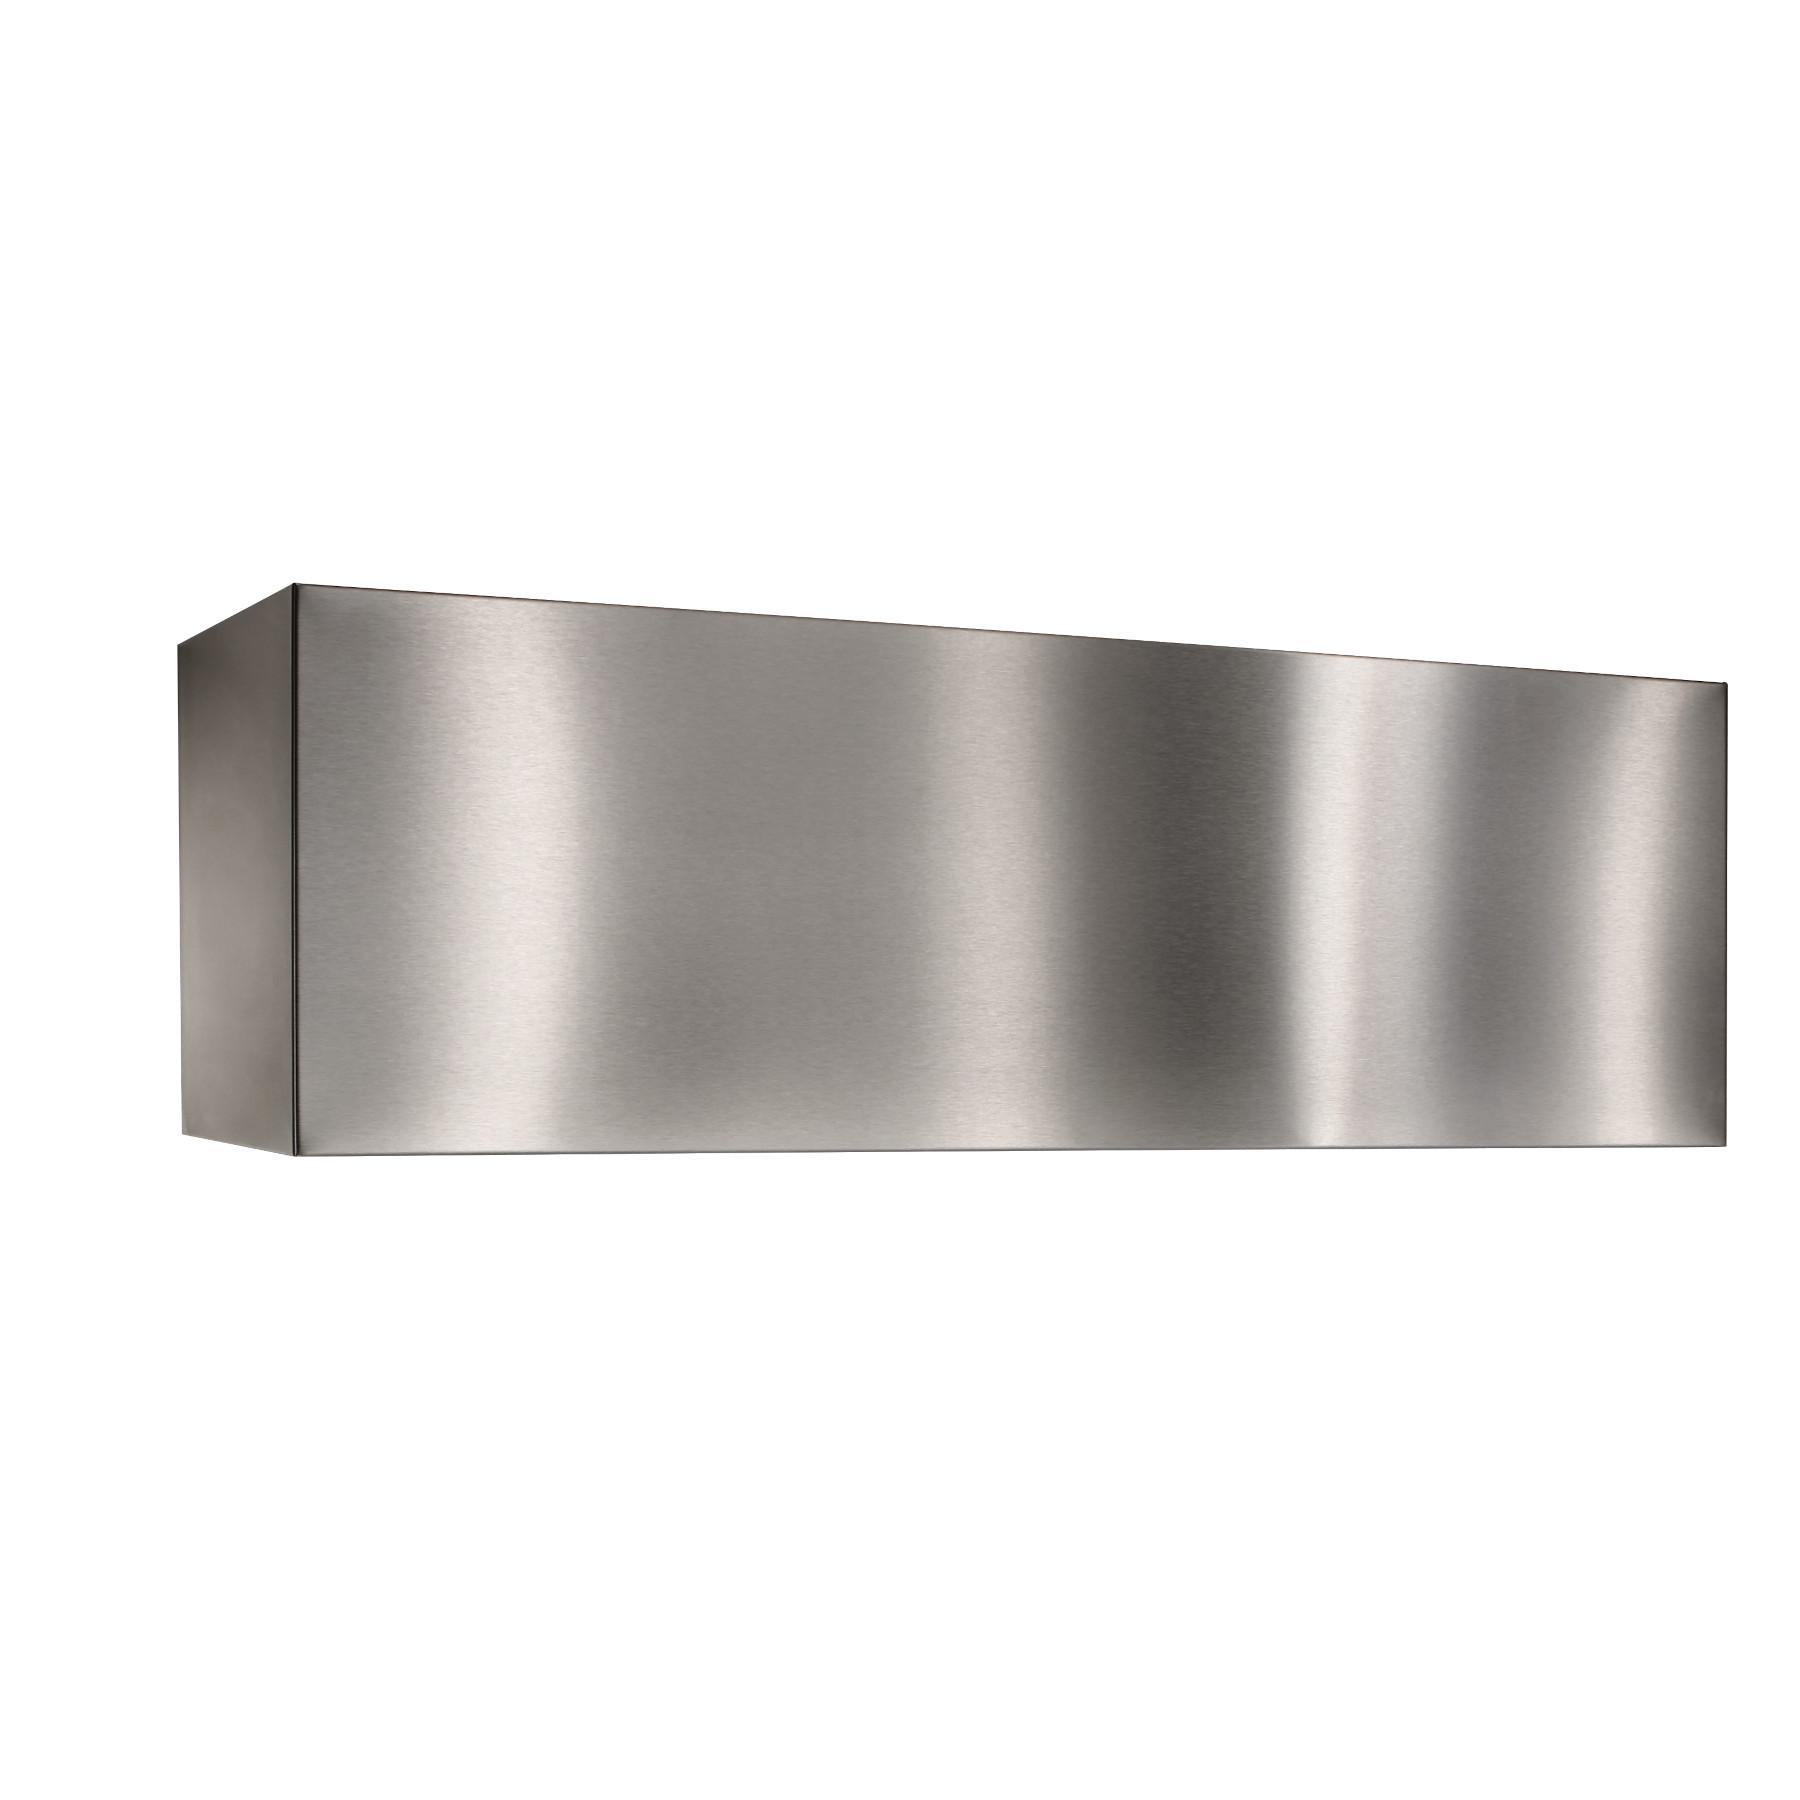 WP28 36'' Flue Cover , 12'' Height, Stainless